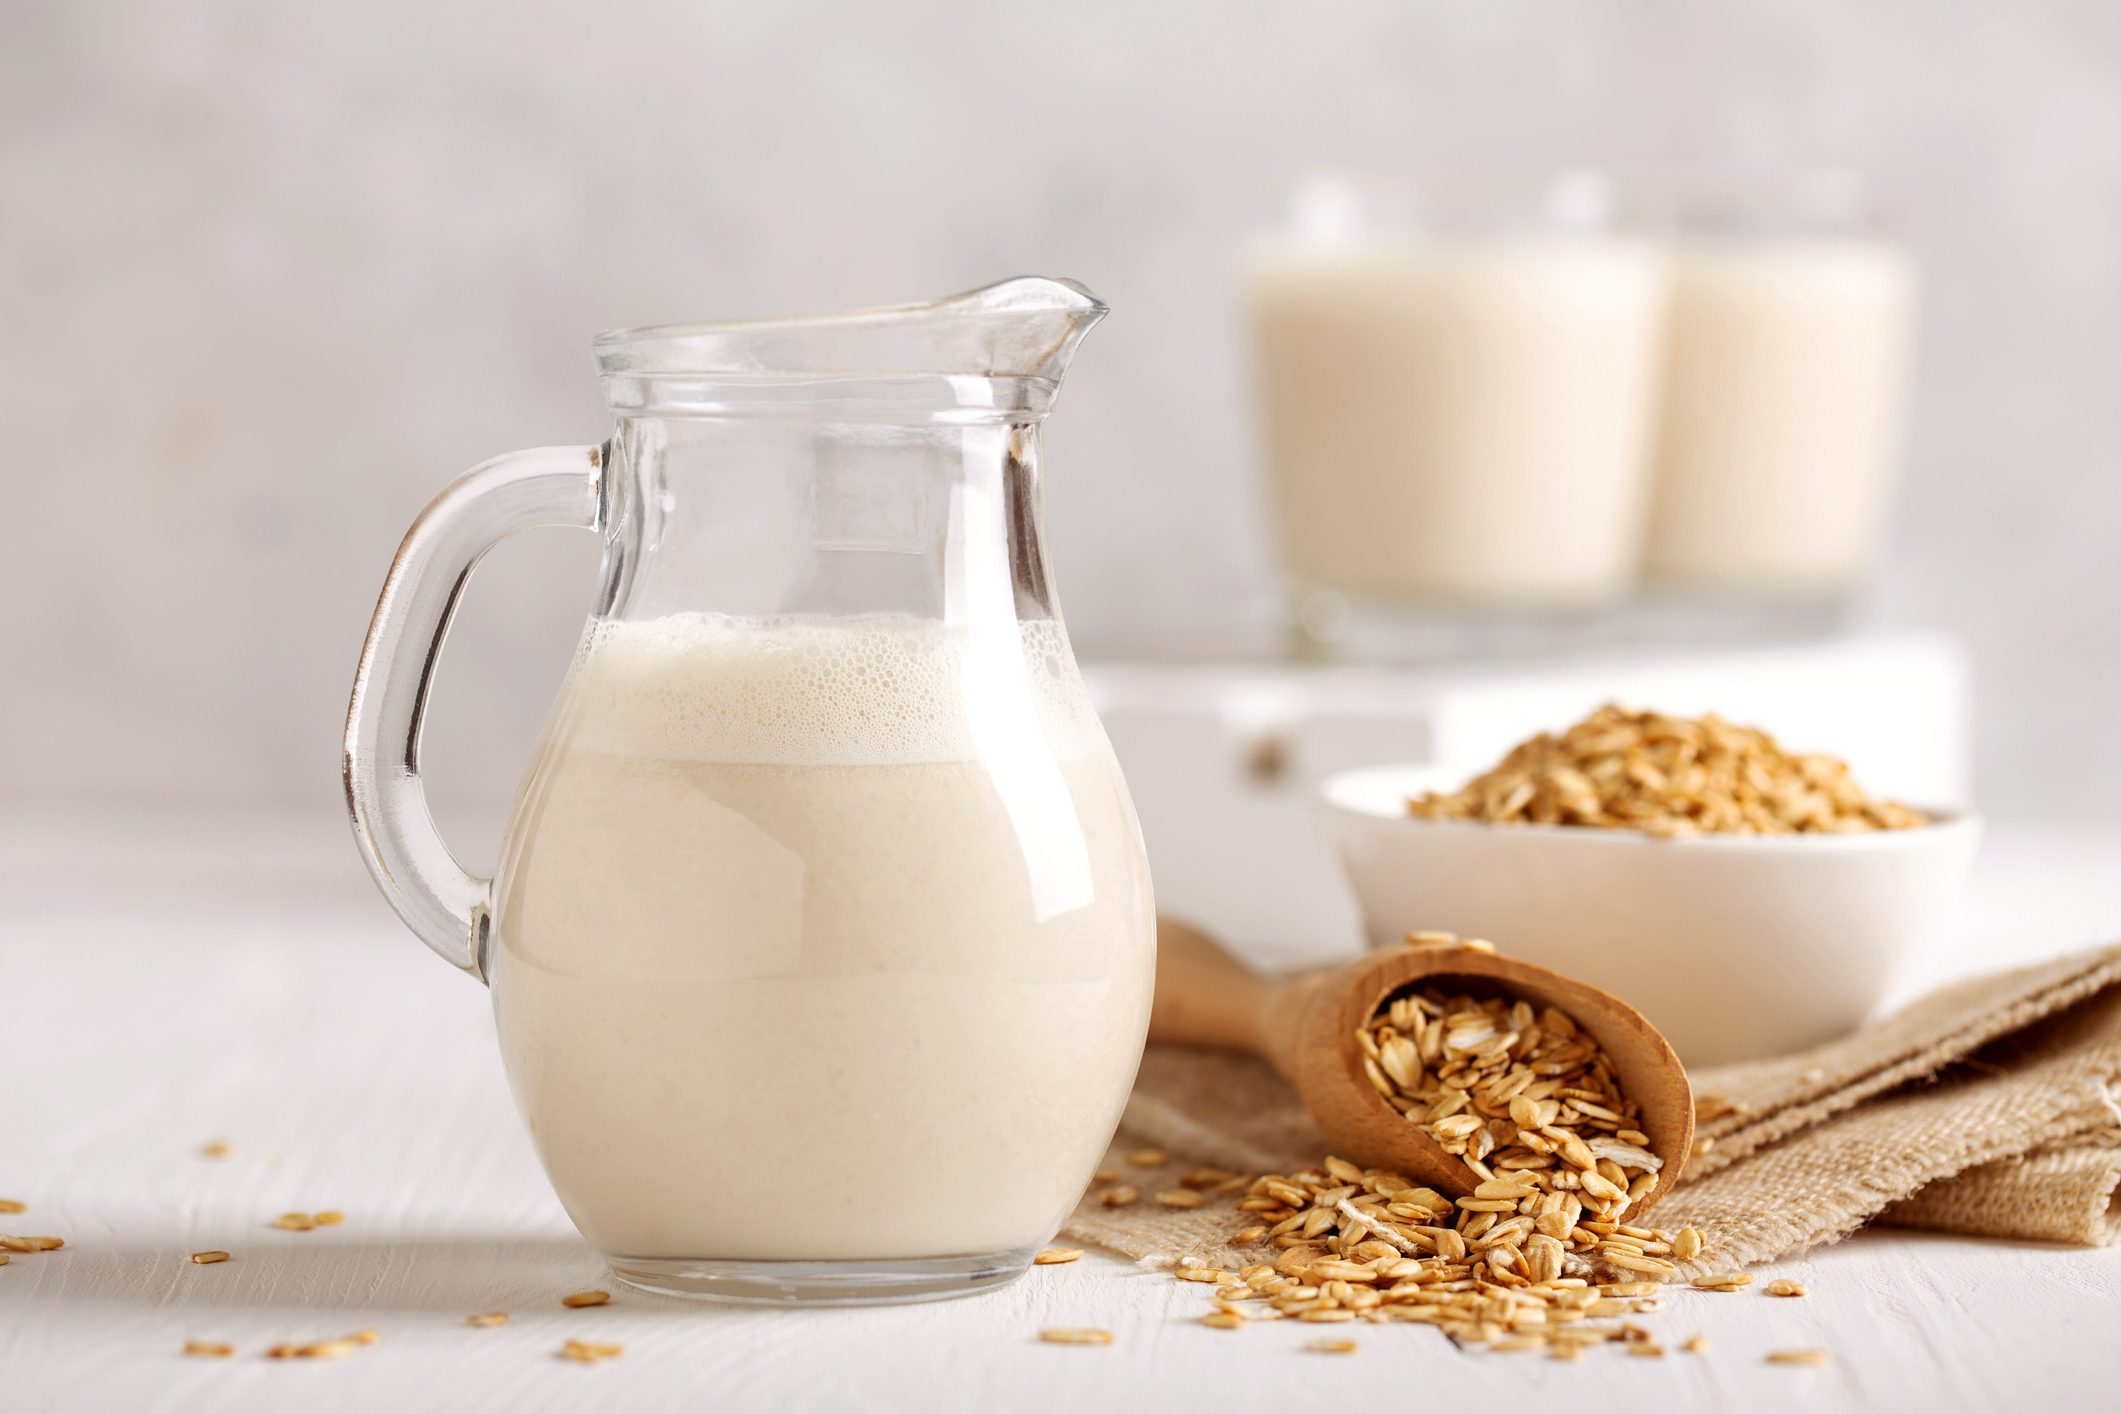 pitcher of oat milk and oats